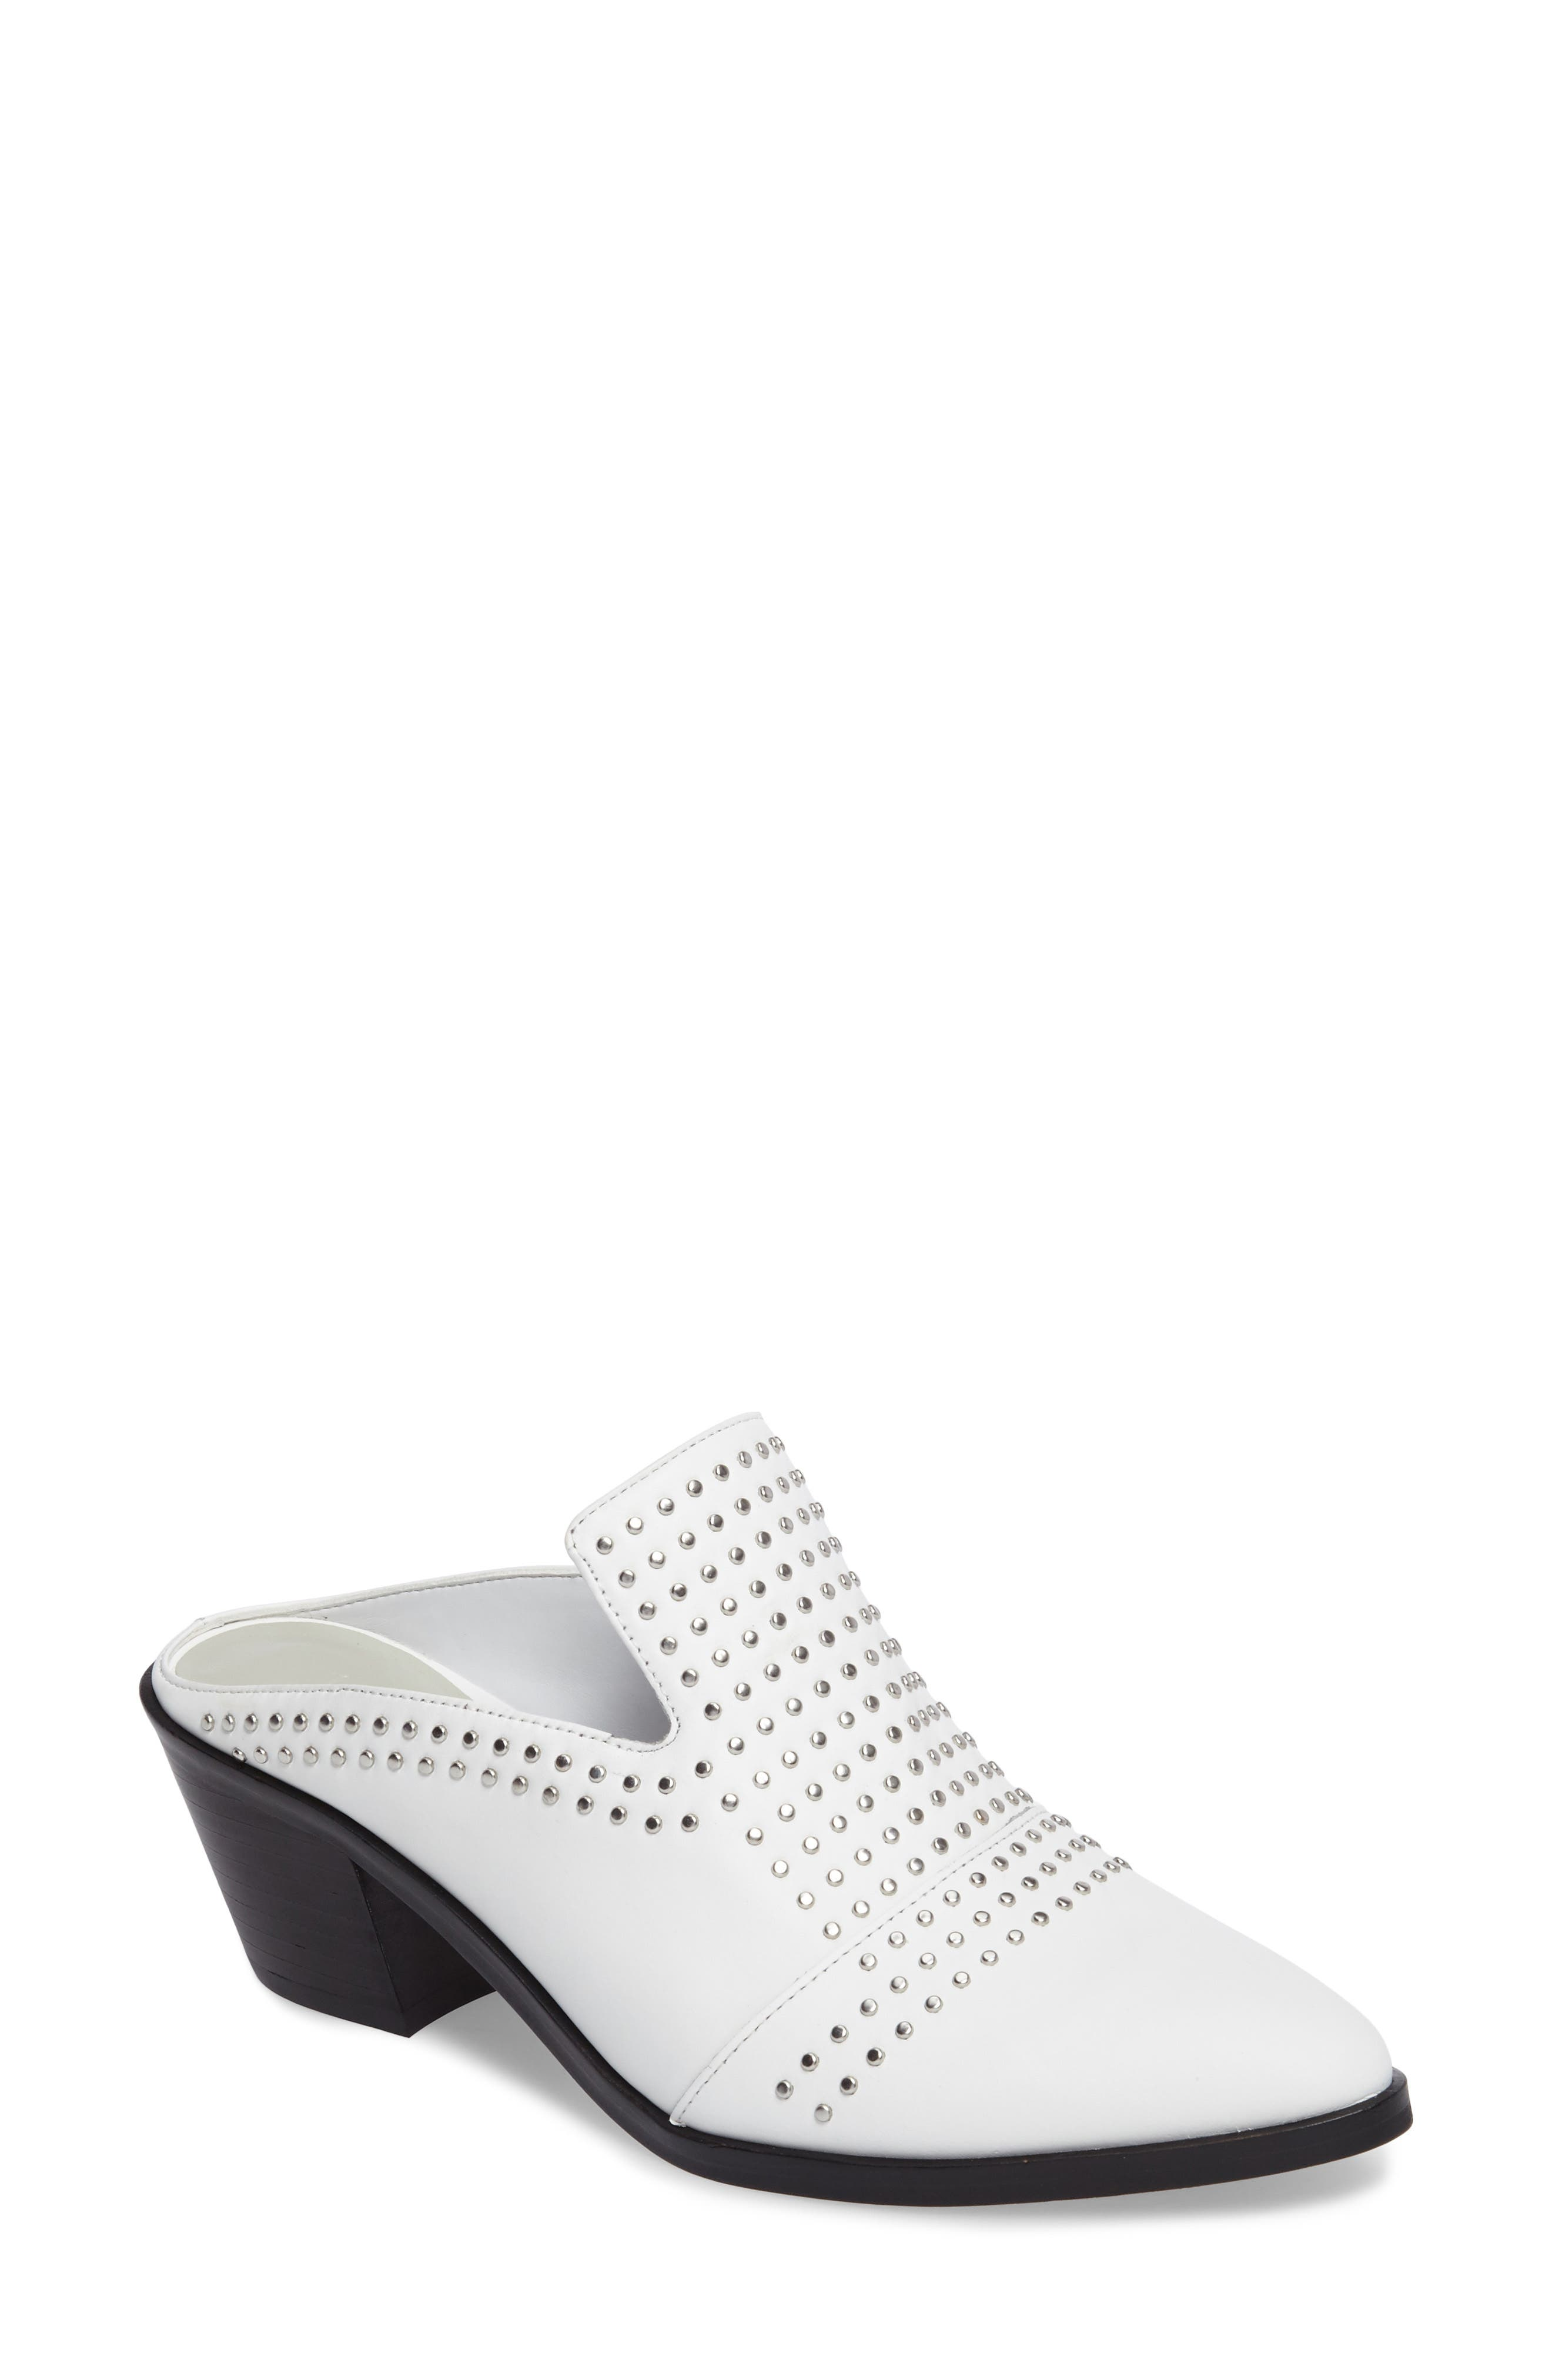 1.STATE Lon Studded Loafer Mule (Women)